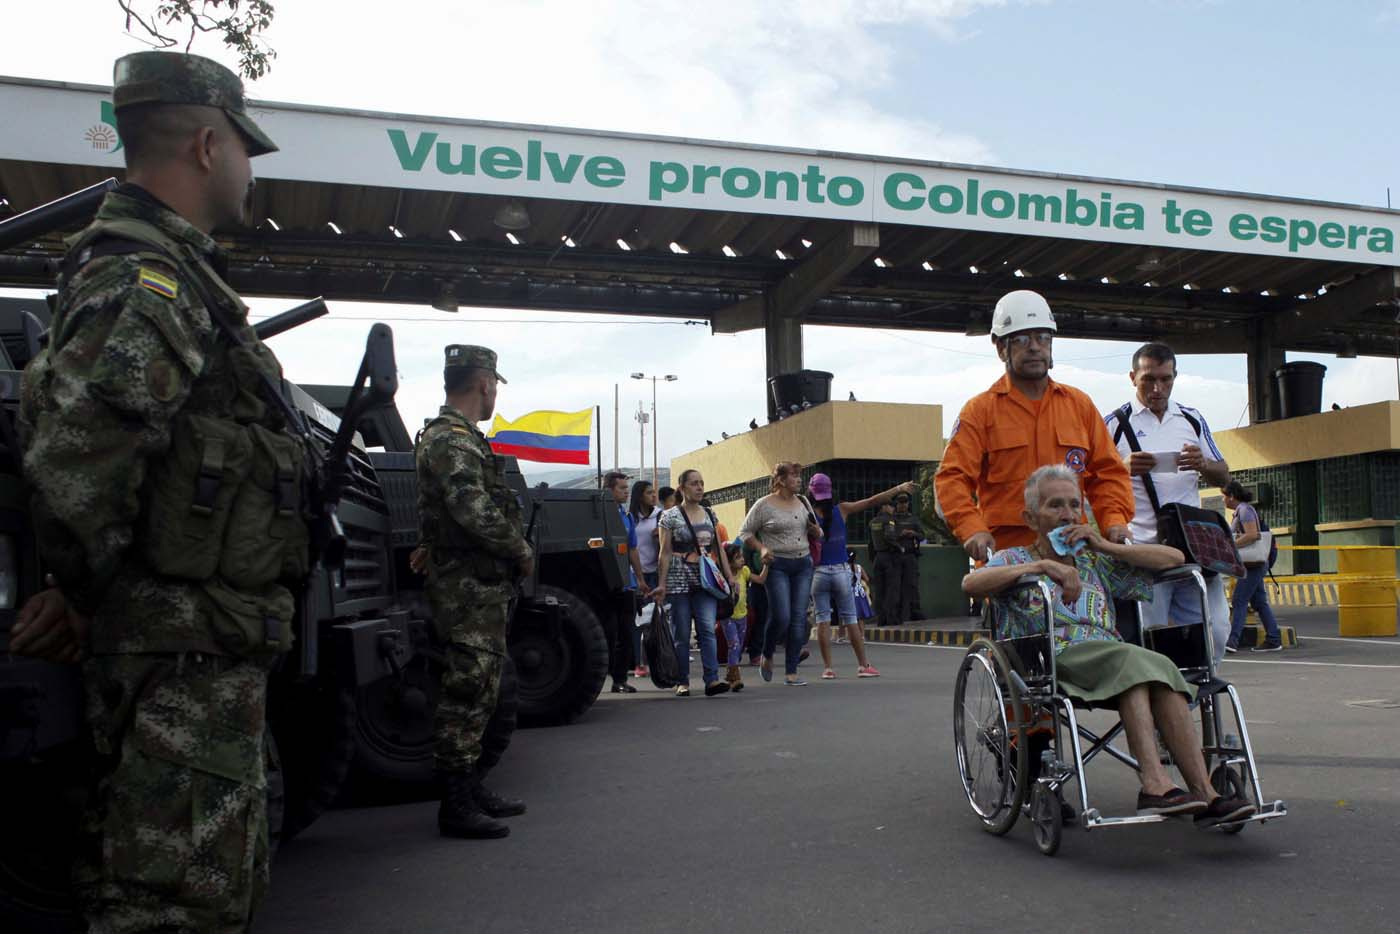 colombia-frontera-acn